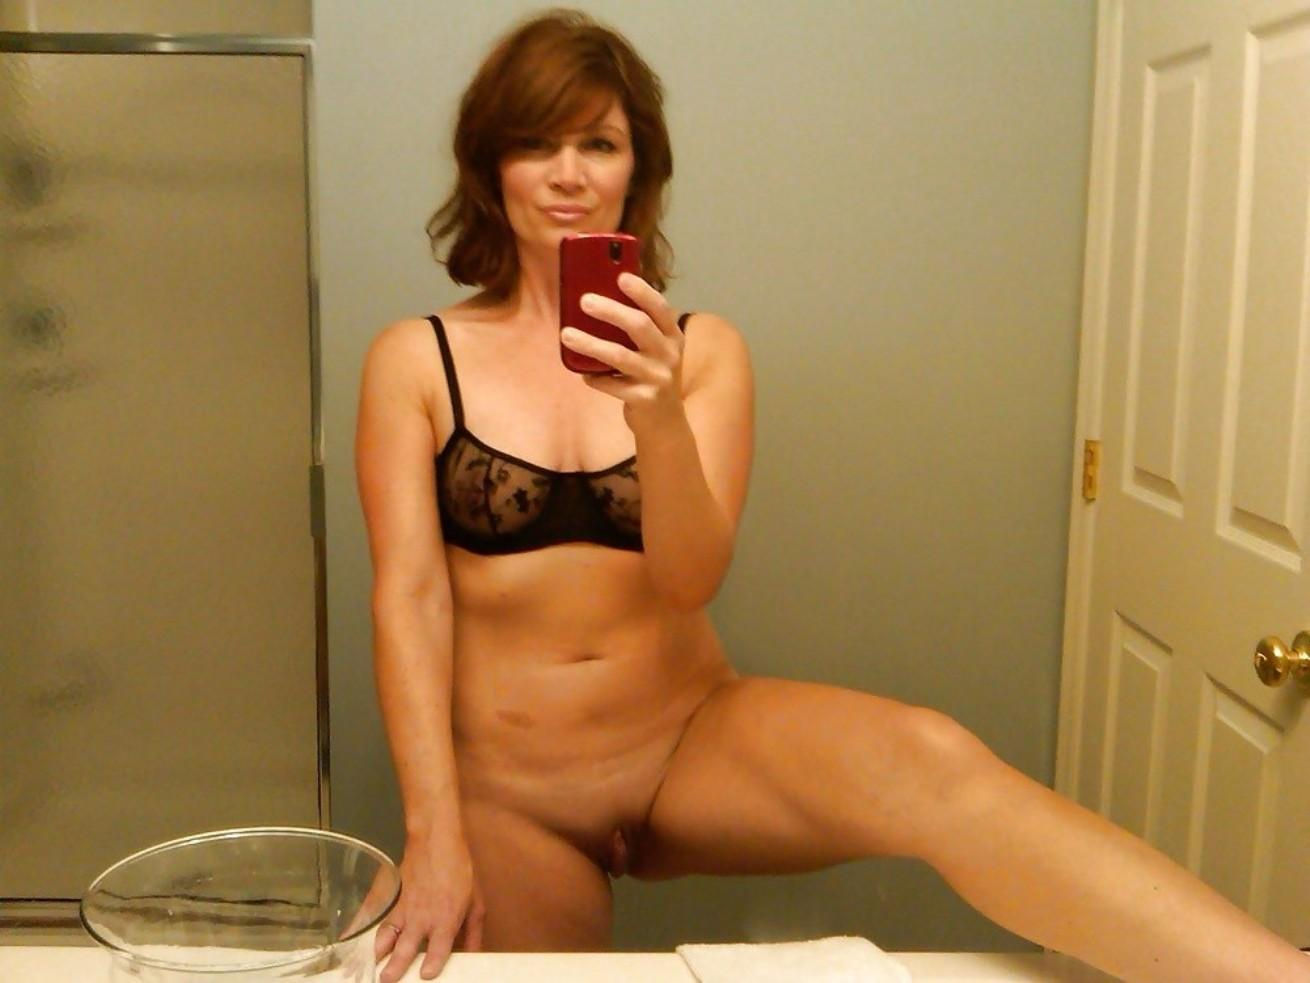 Mature babe takes pussy selfie in the bathroom mirror